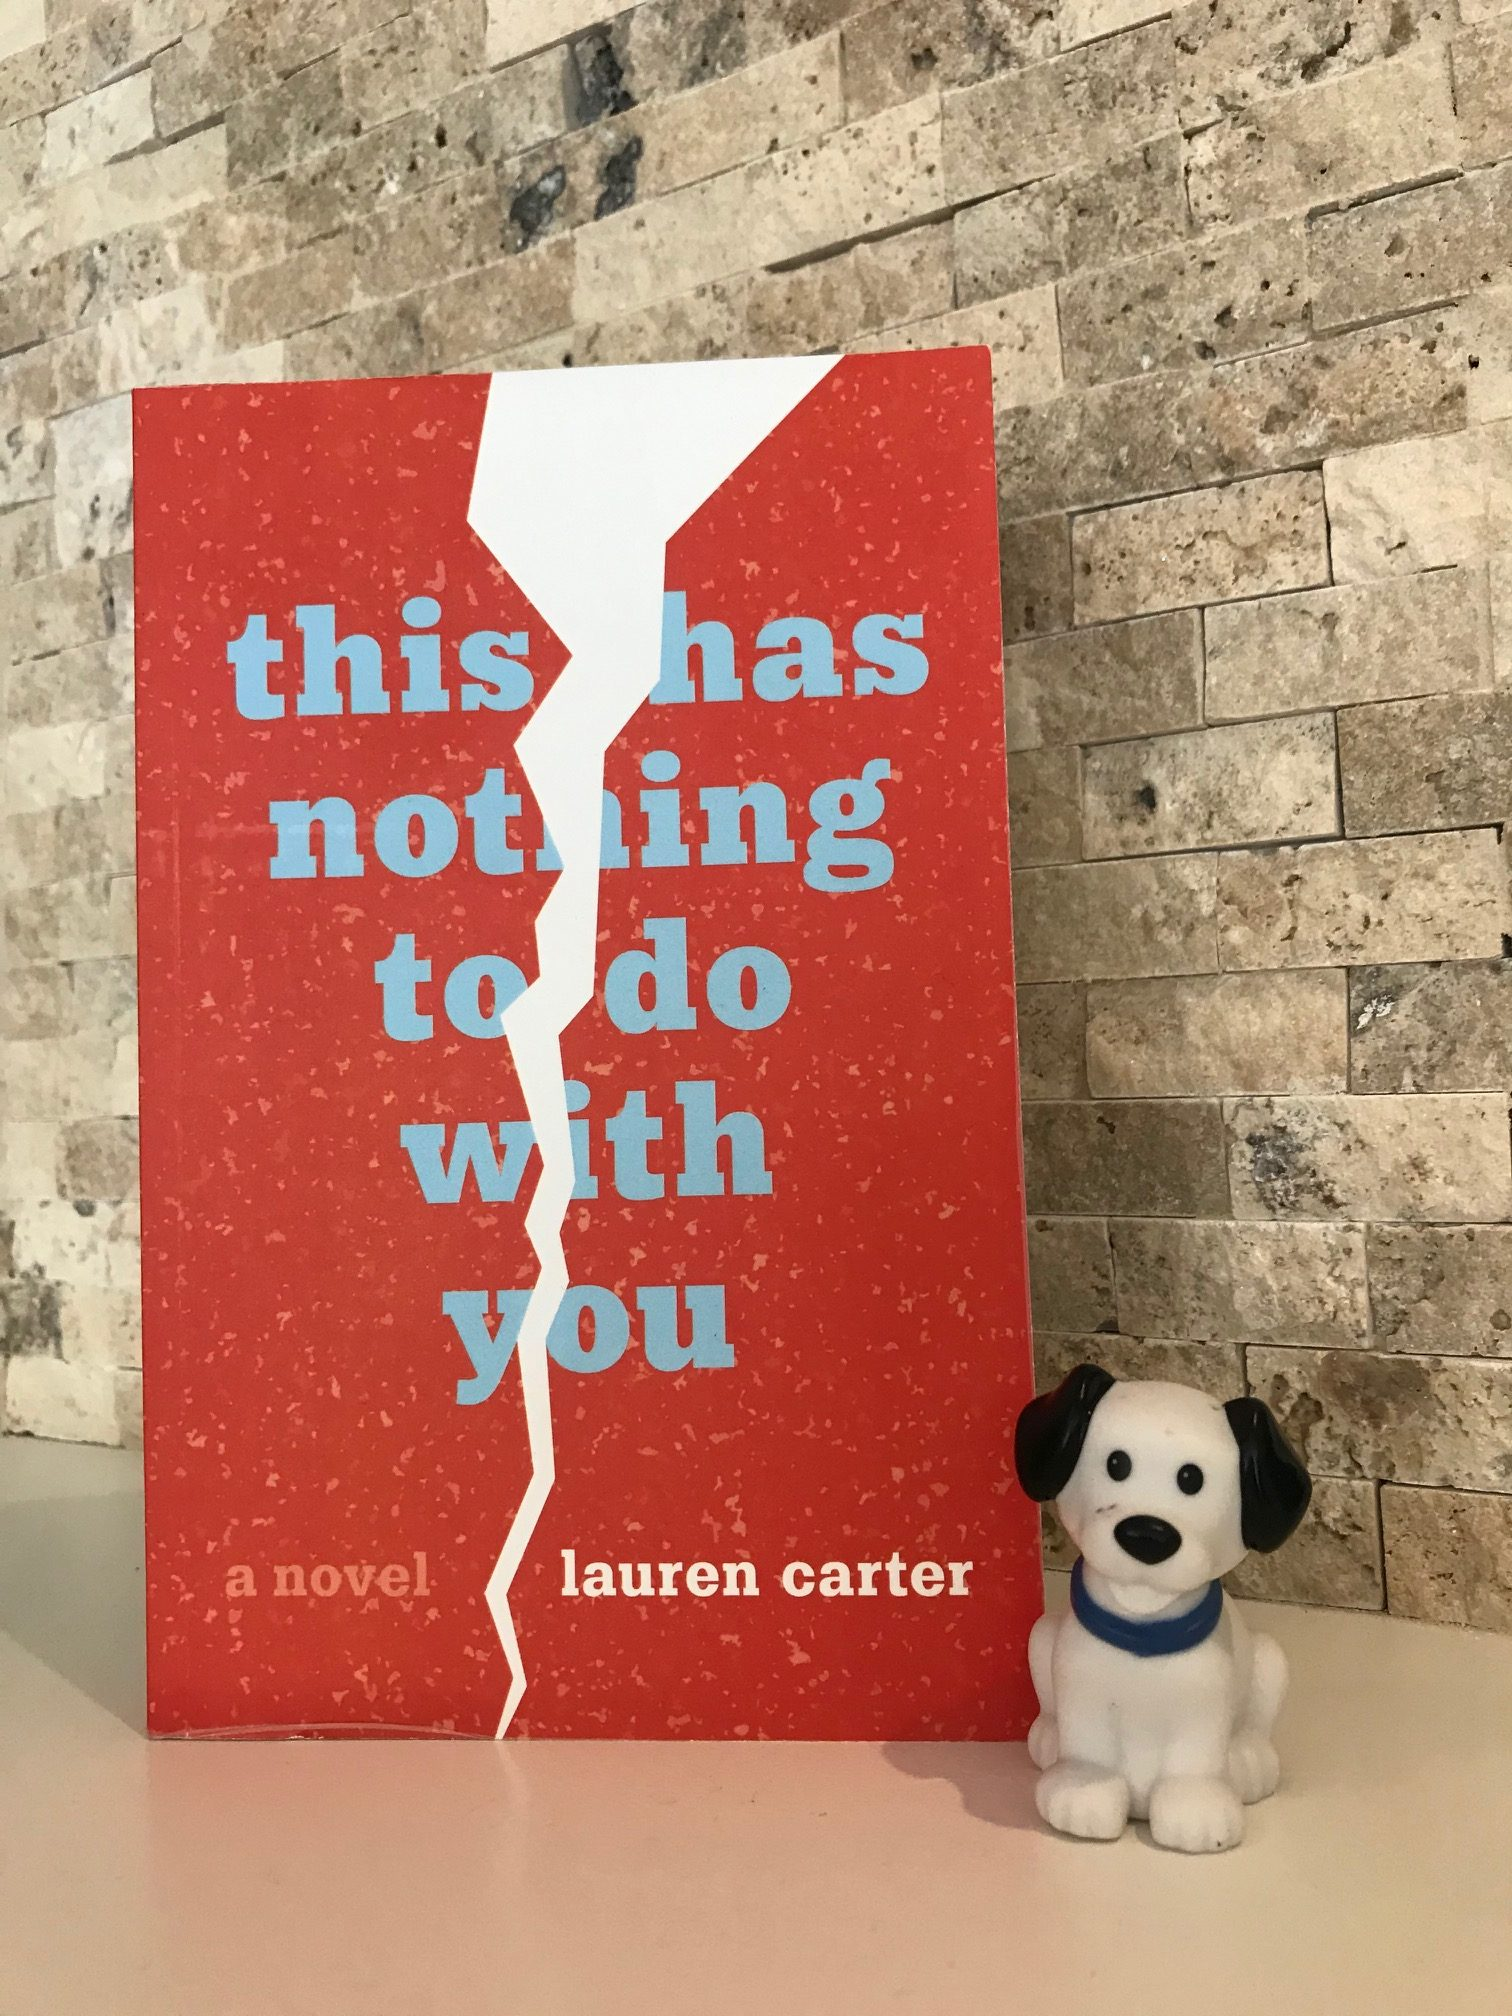 Book Review: This Has Nothing To Do With You by Lauren Carter